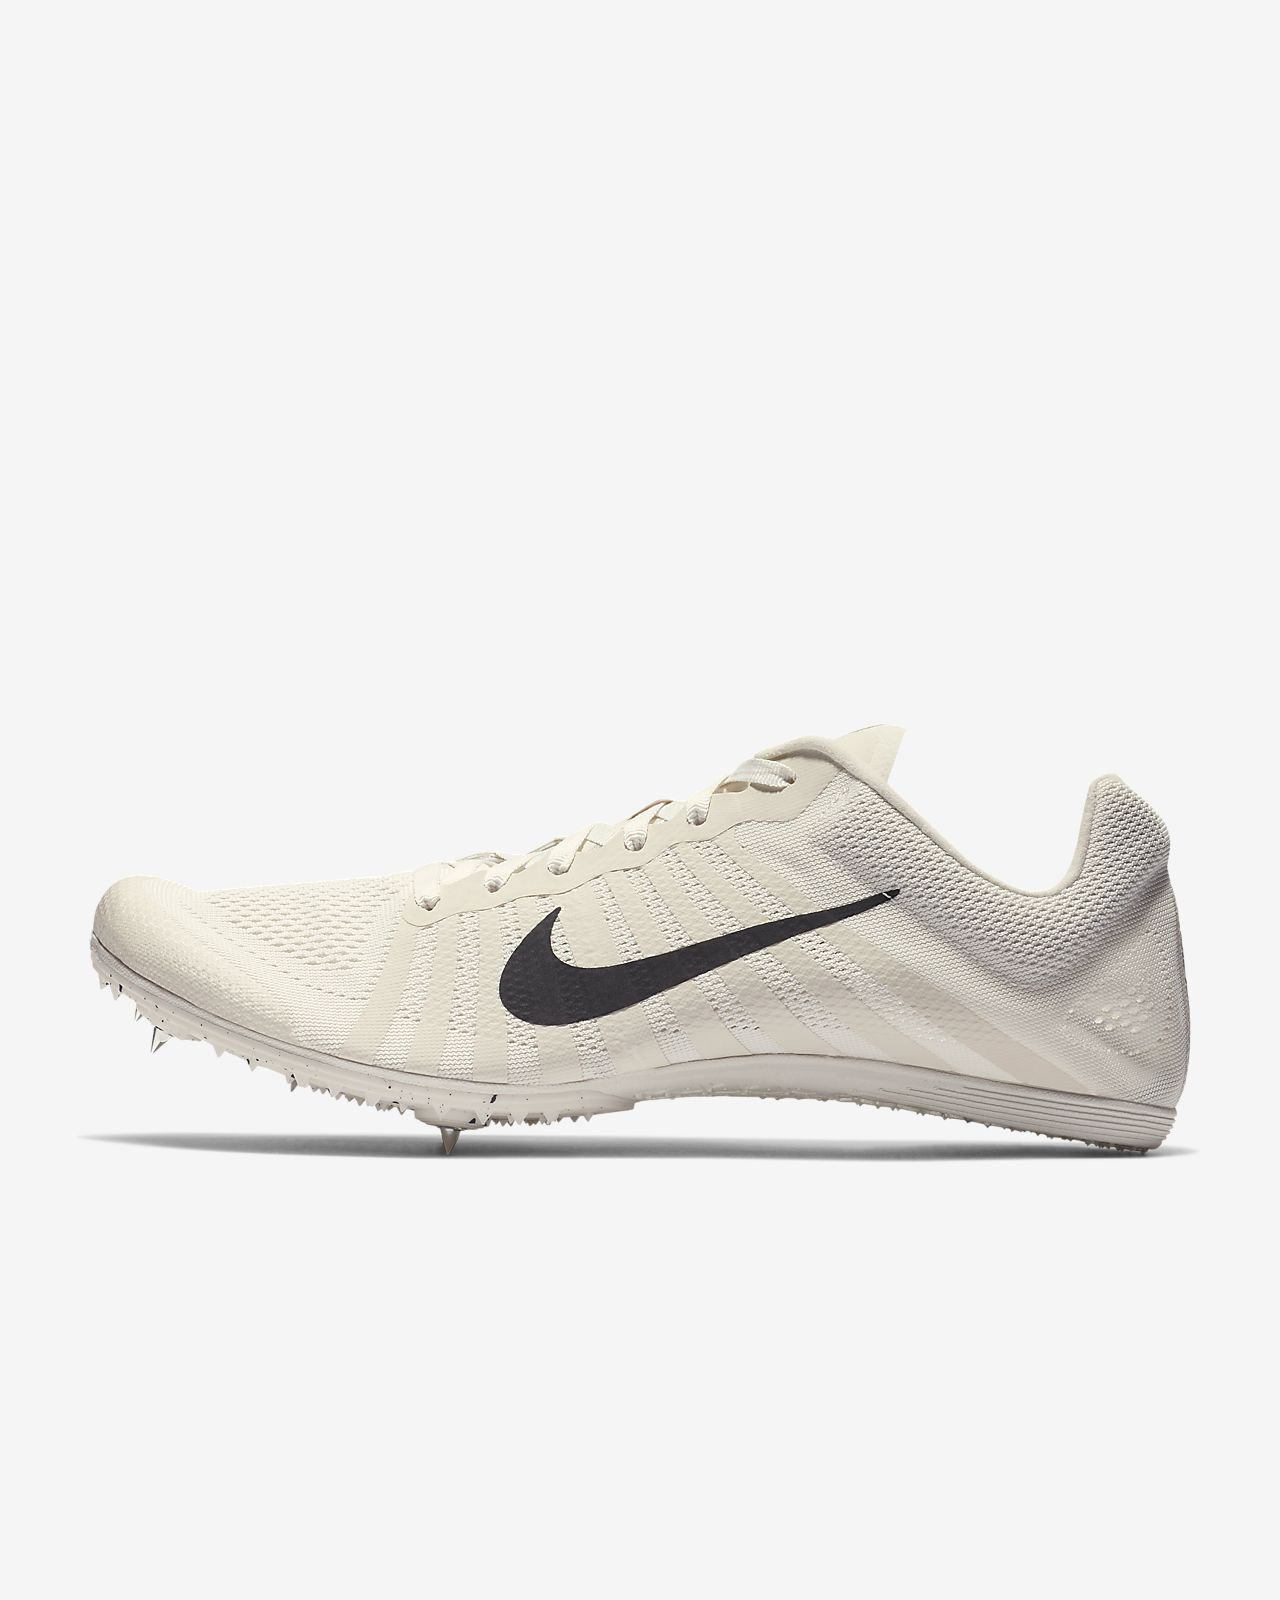 Unisex παπούτσι στίβου Nike Zoom D Distance